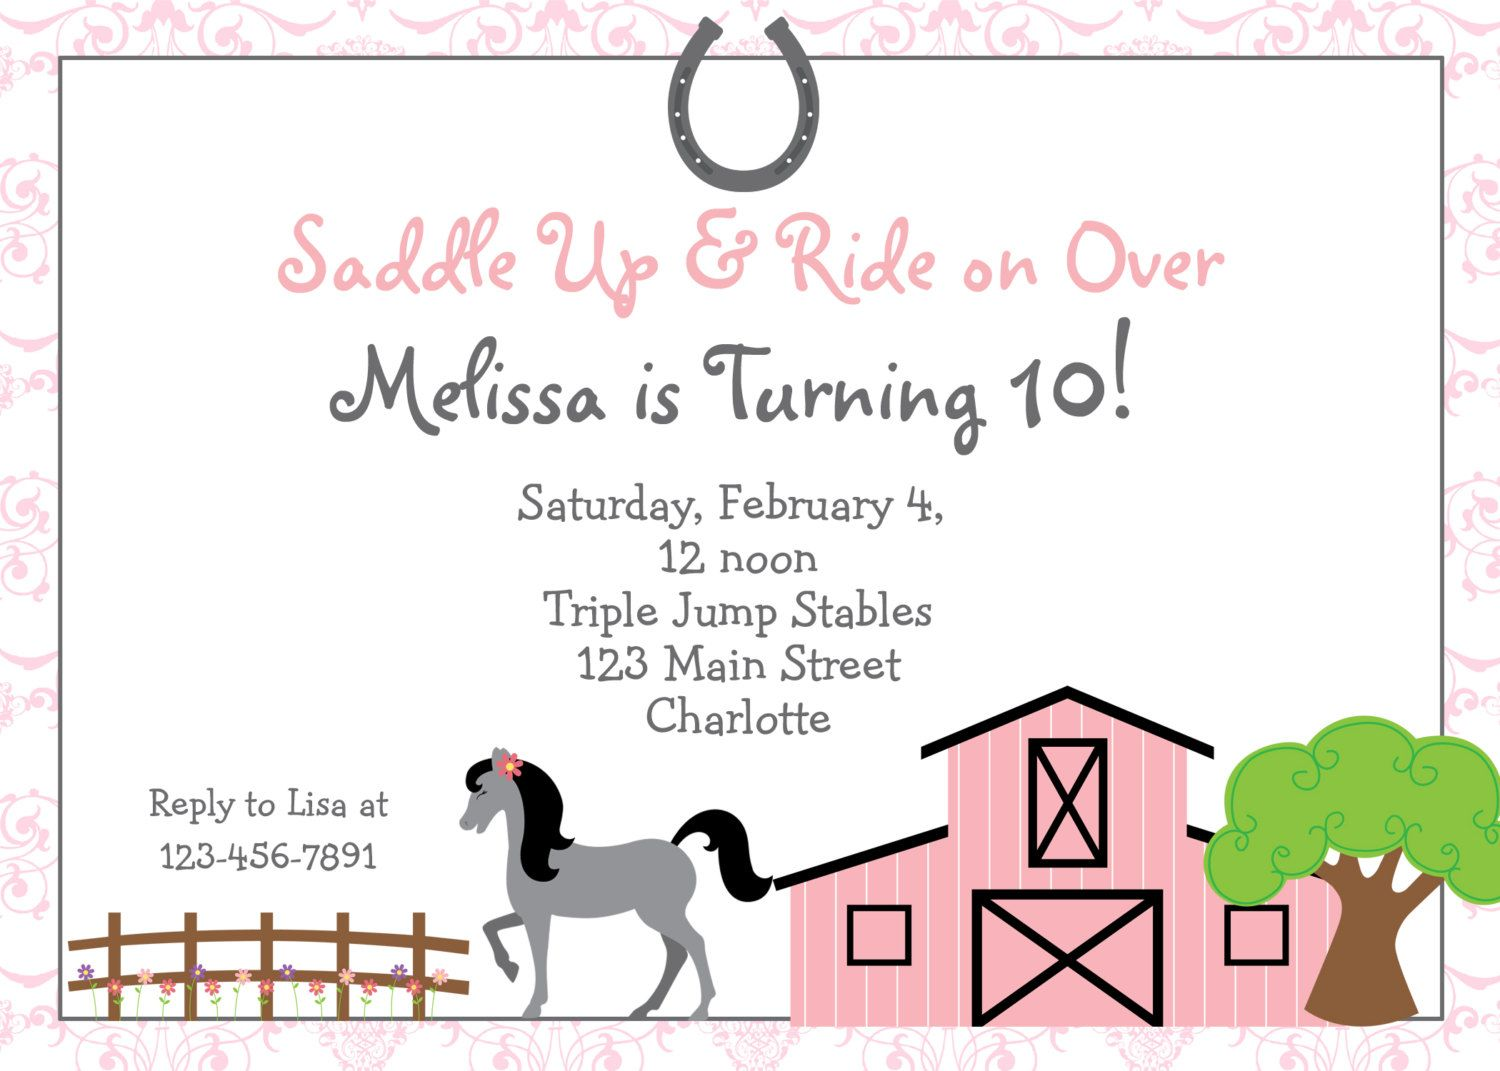 Horseback Riding Birthday Invitation By TheButterflyPress On Etsy 1200